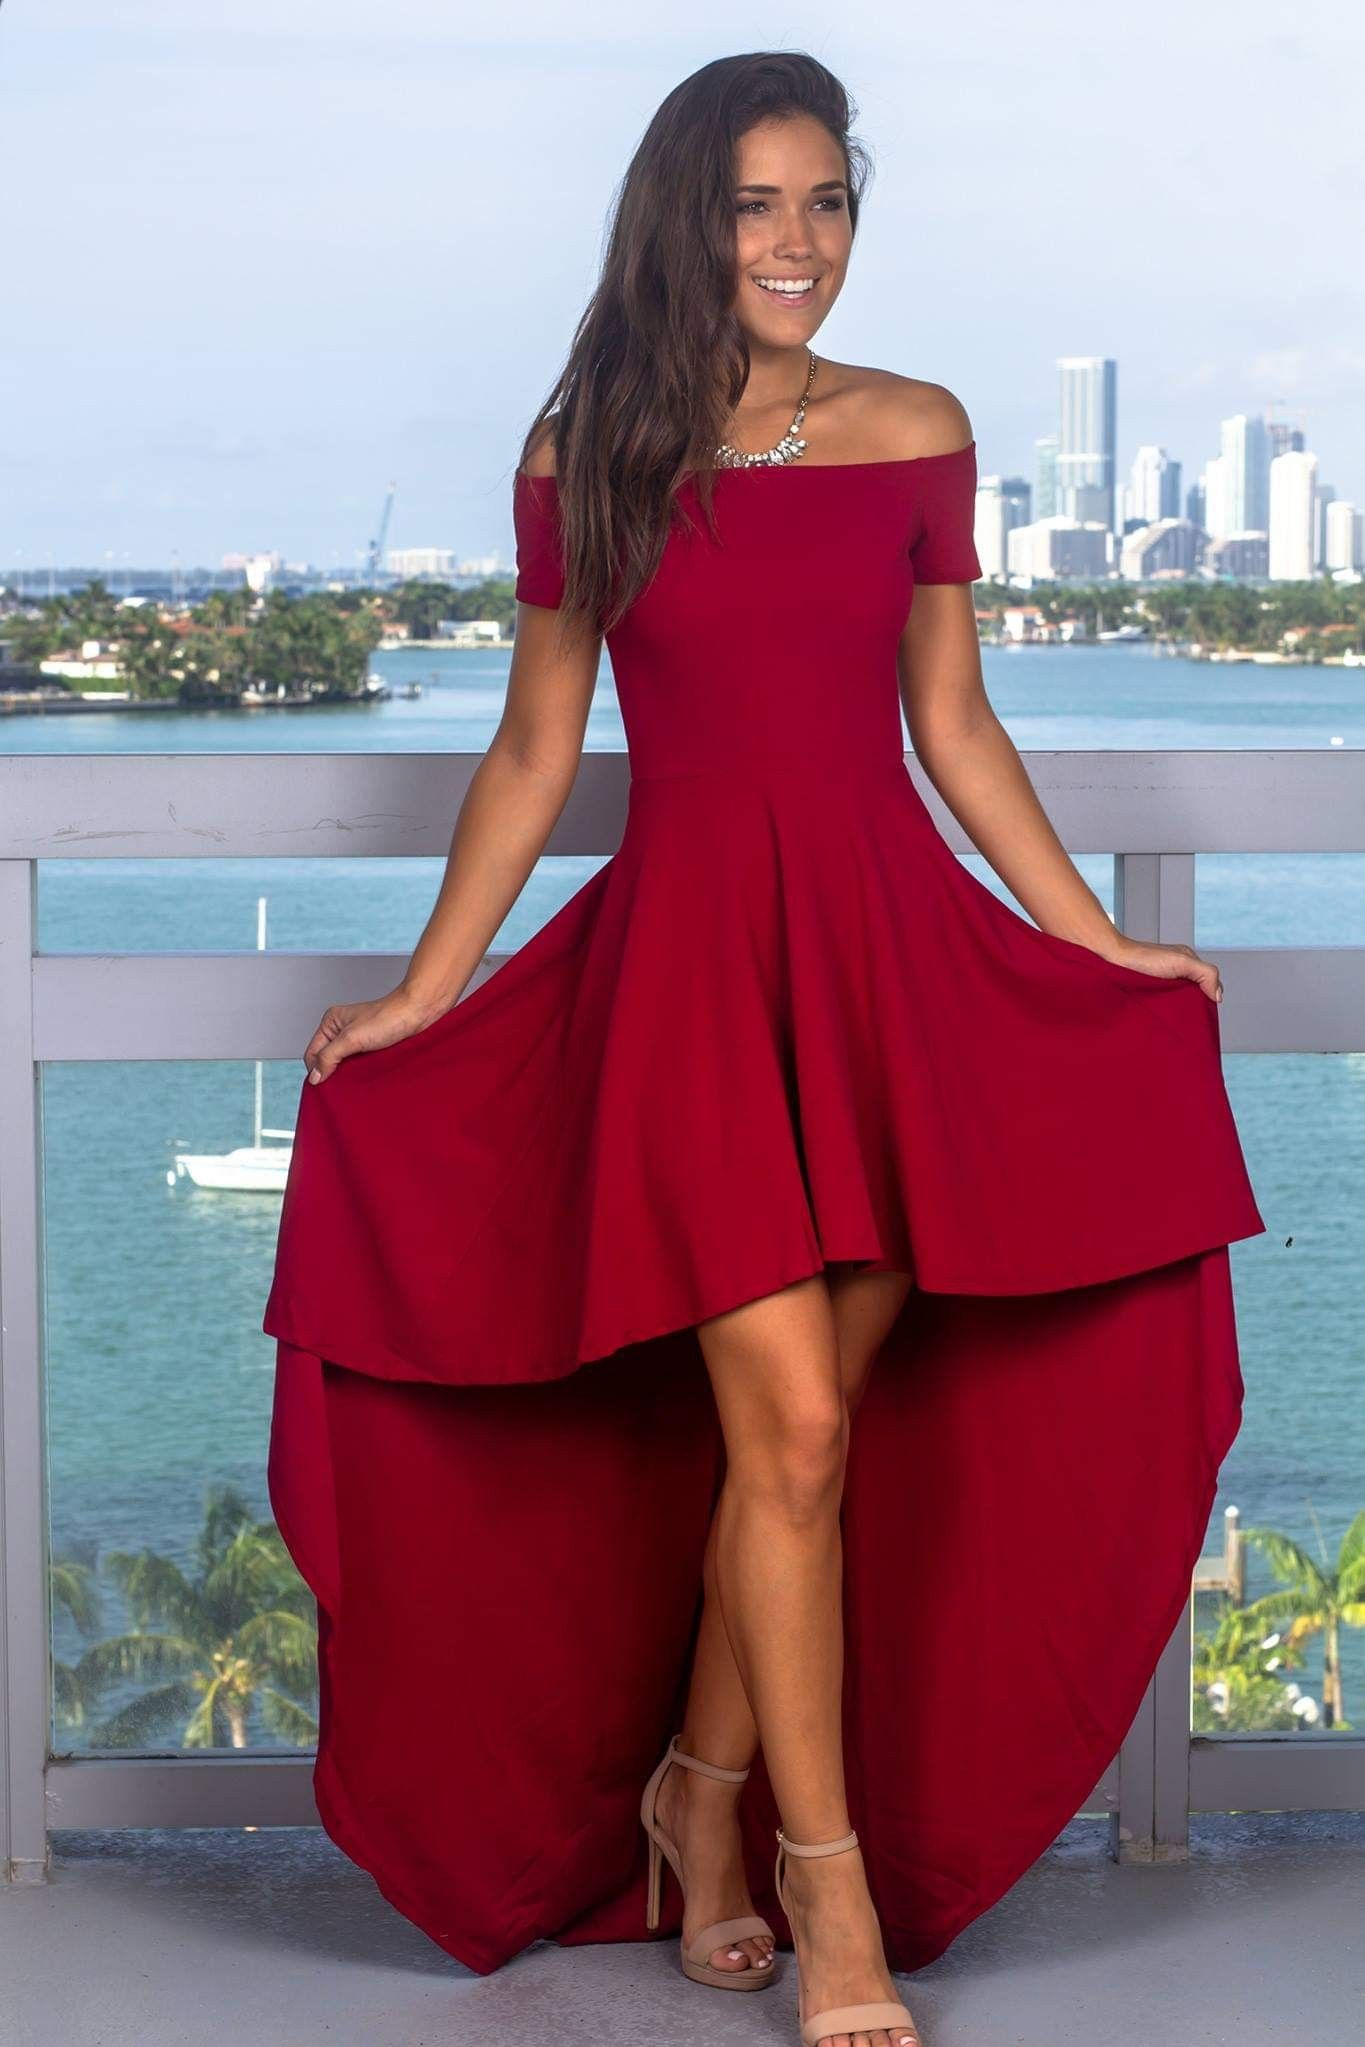 Cocktail Party Dresses Styles For Spring Summer 2015 Spring Outfits Women Summer Dress 2015 Spring Party Dresses [ 1166 x 900 Pixel ]